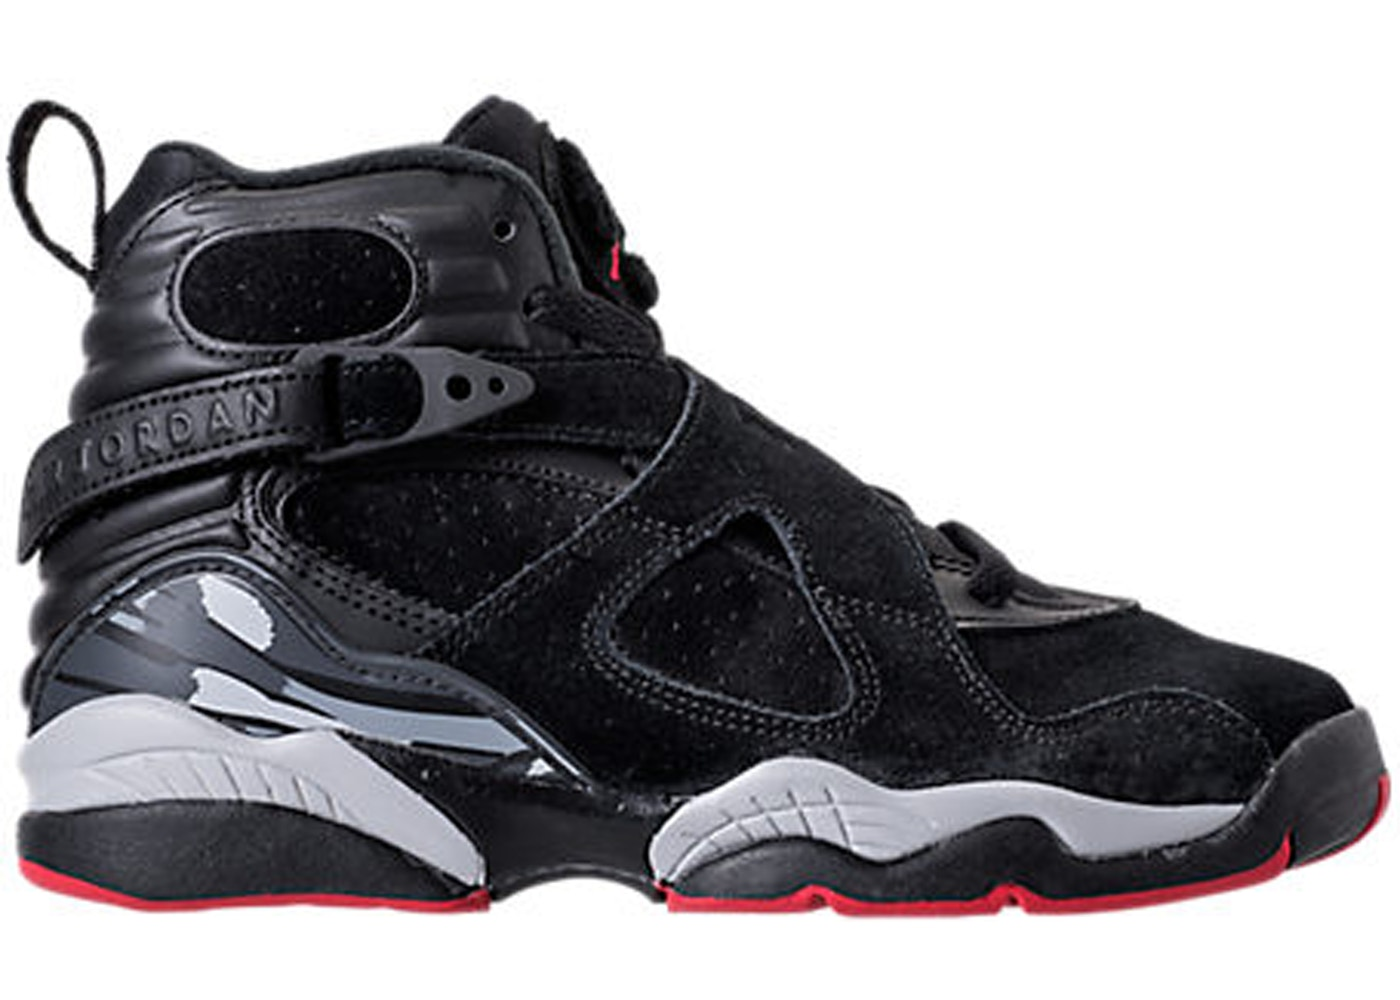 low priced 0ab03 7a89d Air Jordan 8 Shoes - Release Date